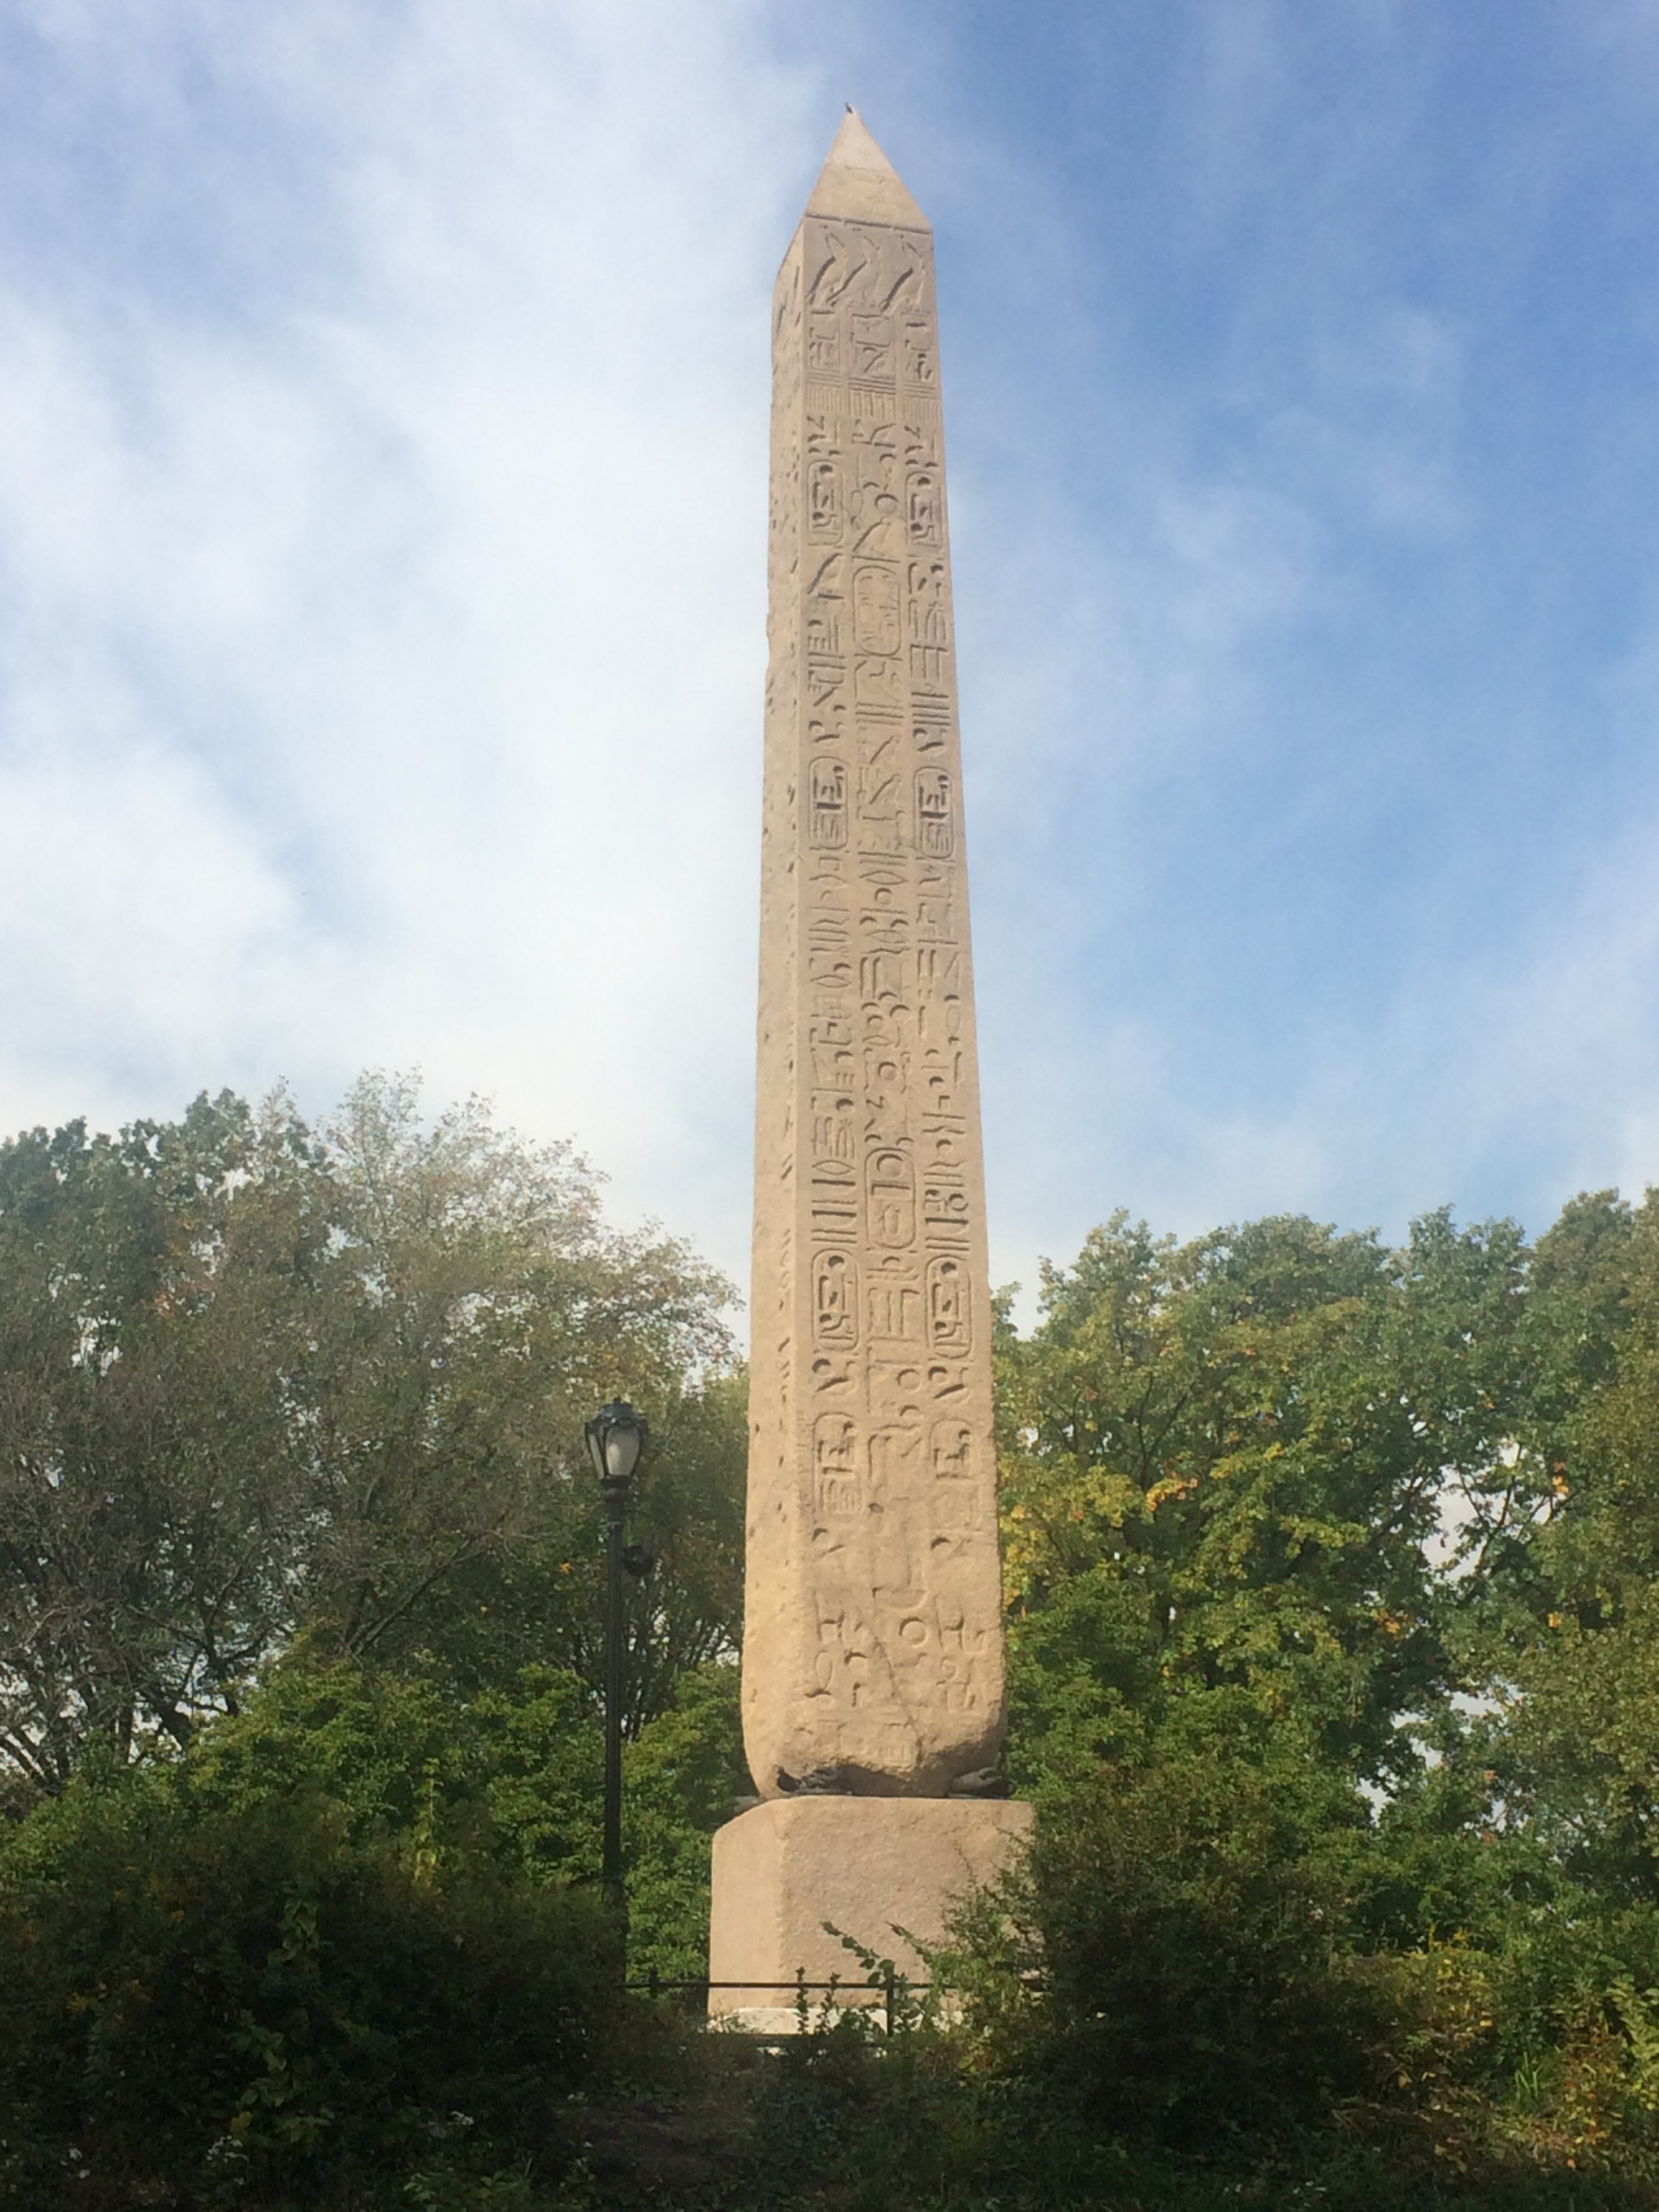 cleopatras needle obelisk central park new york city